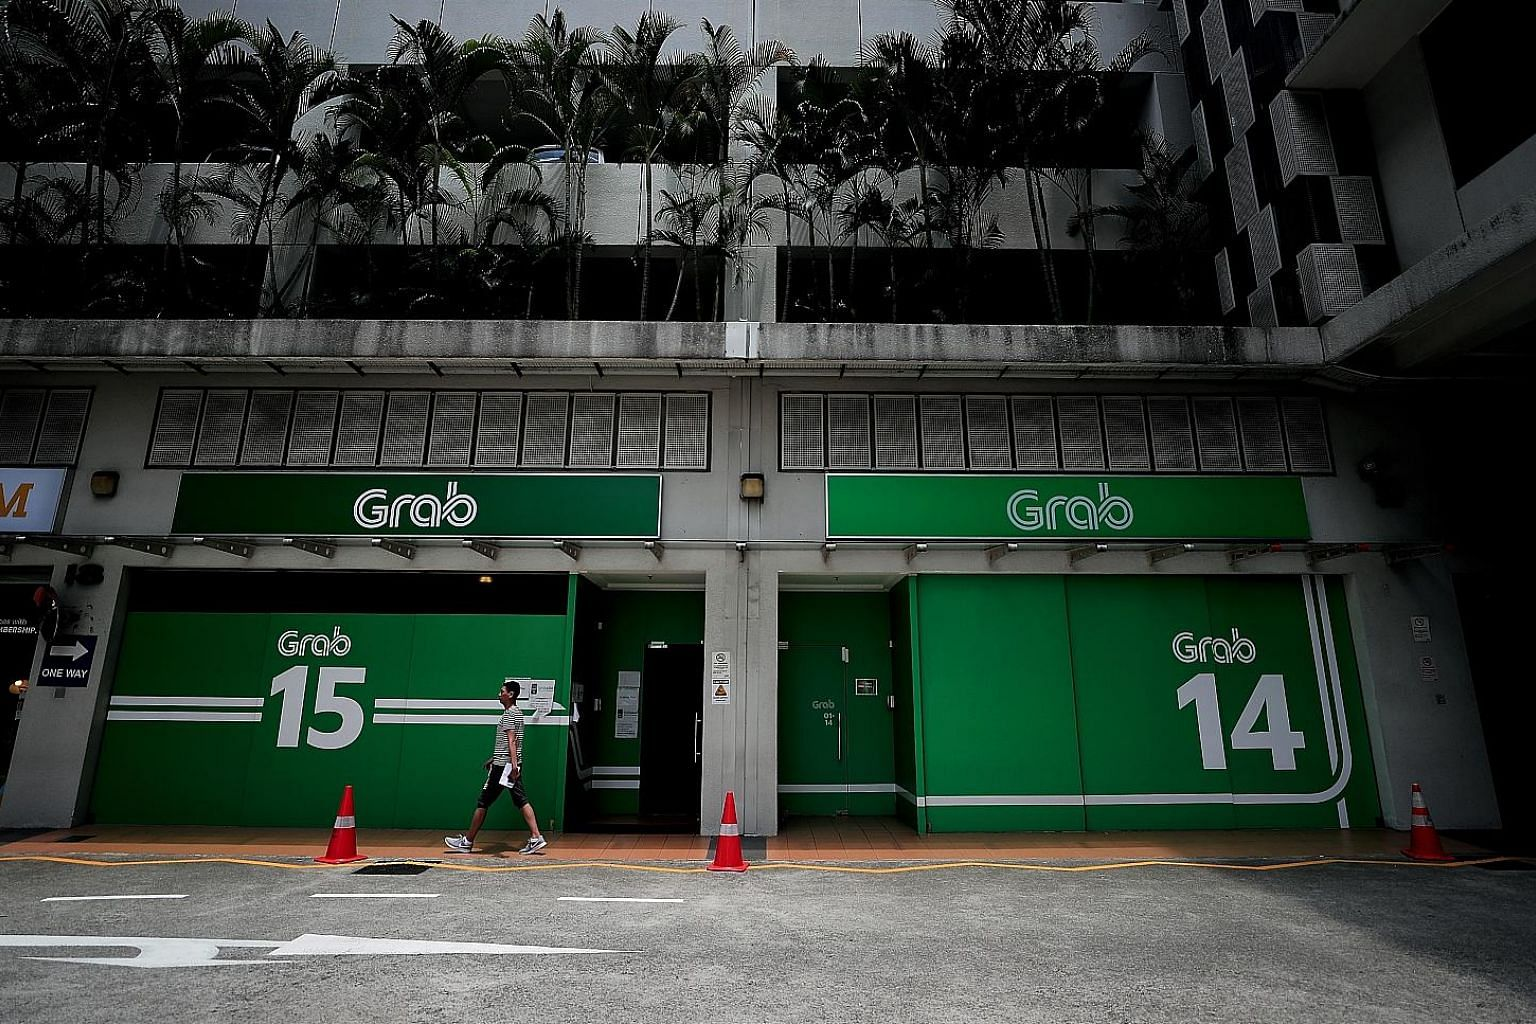 Grab said it has so far raised US$2.7 billion in funding, including Hyundai's latest investment, and is on track to attract over US$3 billion by the year end. Its president Ming Maa said the partnership will help Grab lower car ownership and operatin